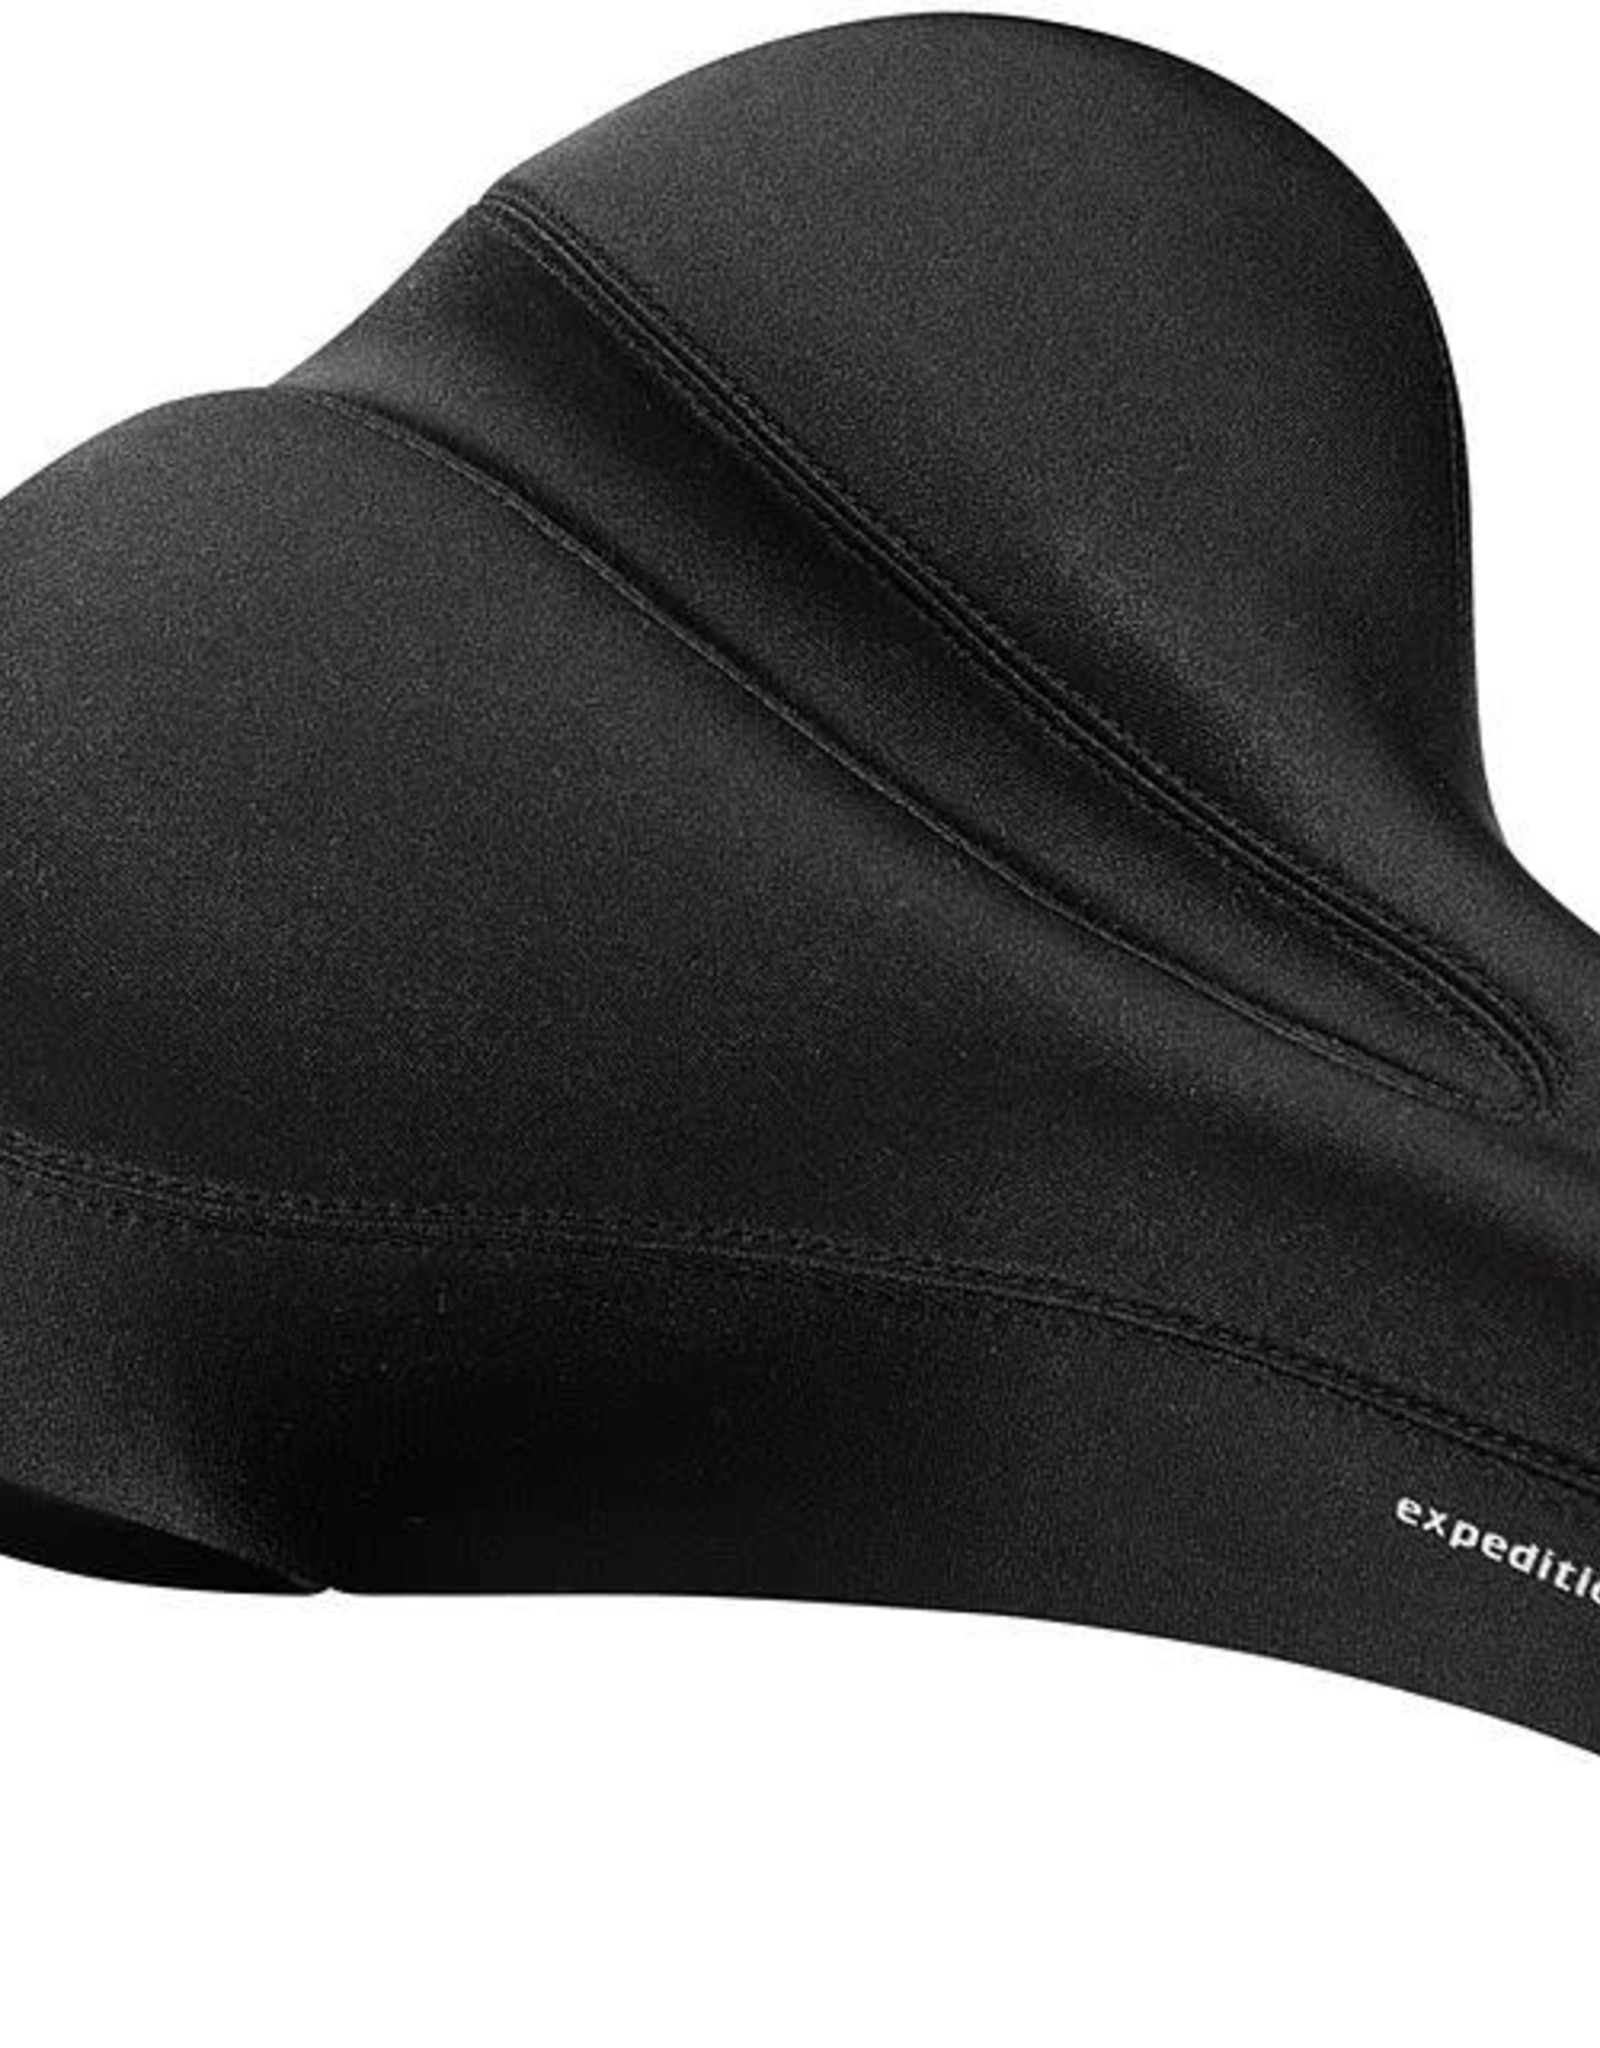 SPECIALIZED SPECIALIZED Saddle EXPEDITION GEL Black 215mm